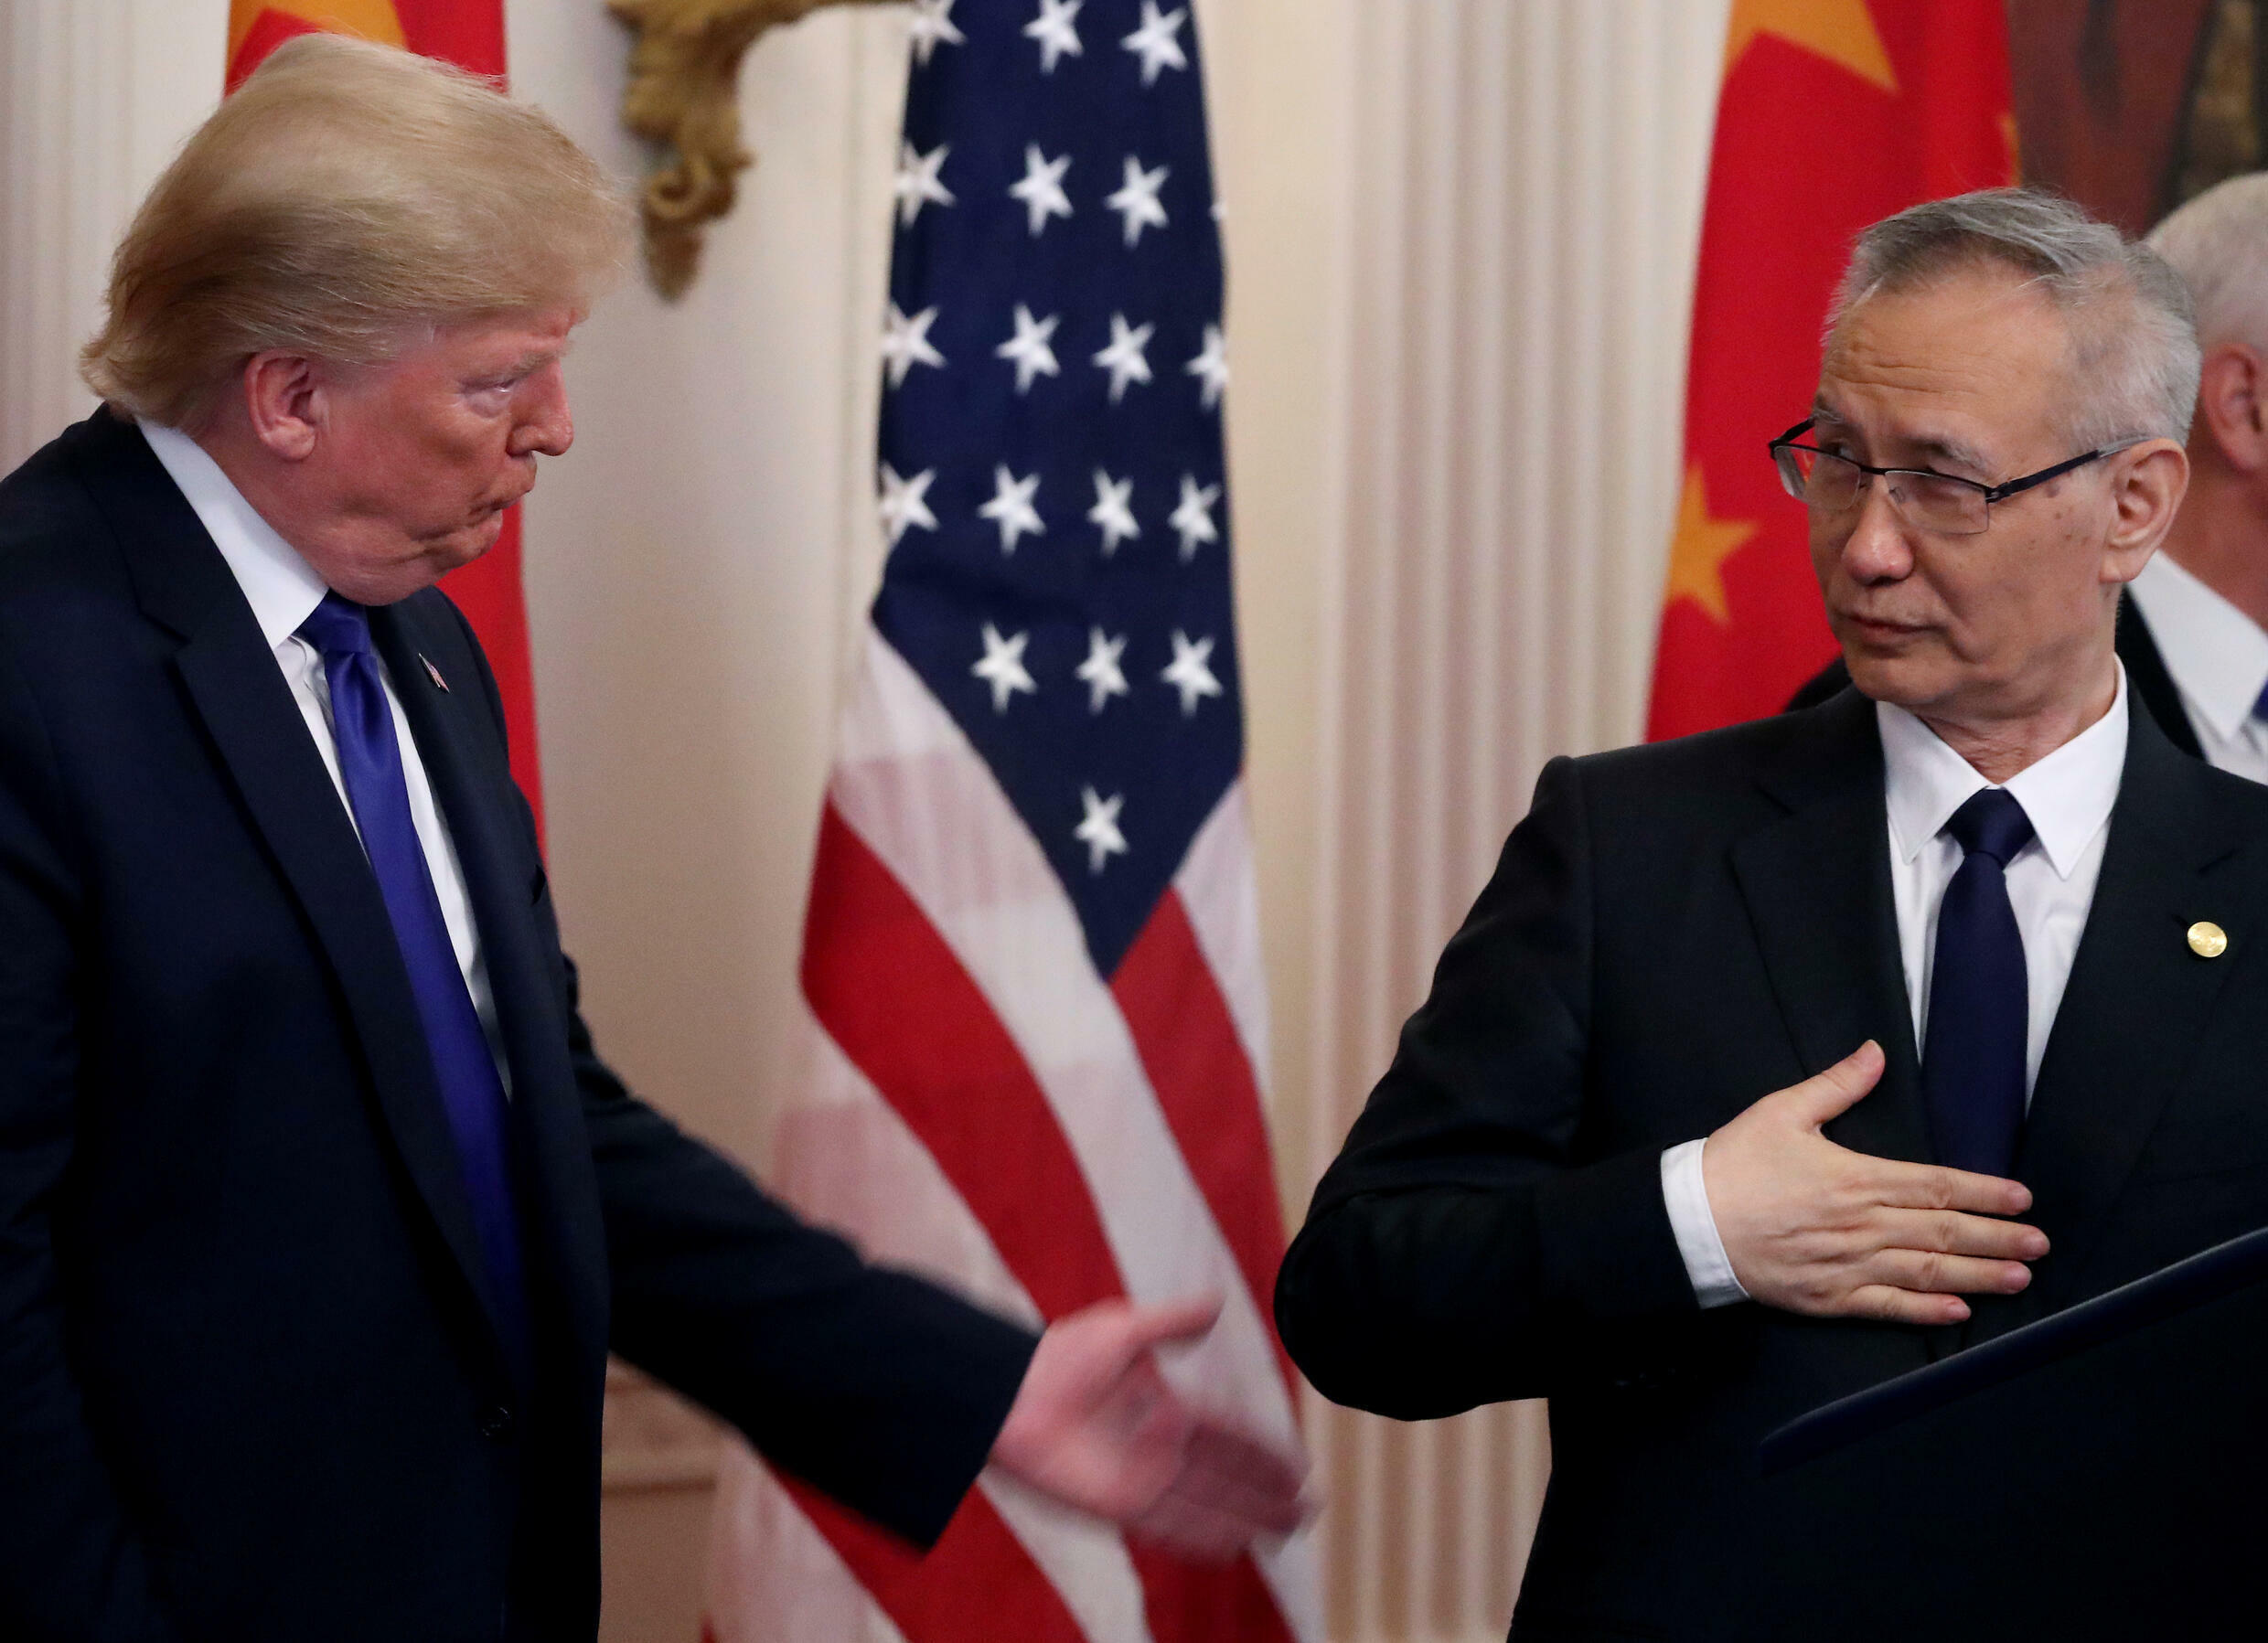 Chinese Vice Premier Liu He at the signing of phase 1 of the bilateral trade agreement with former US President Donald Trump.  Photo taken at the White House on January 15, 2020